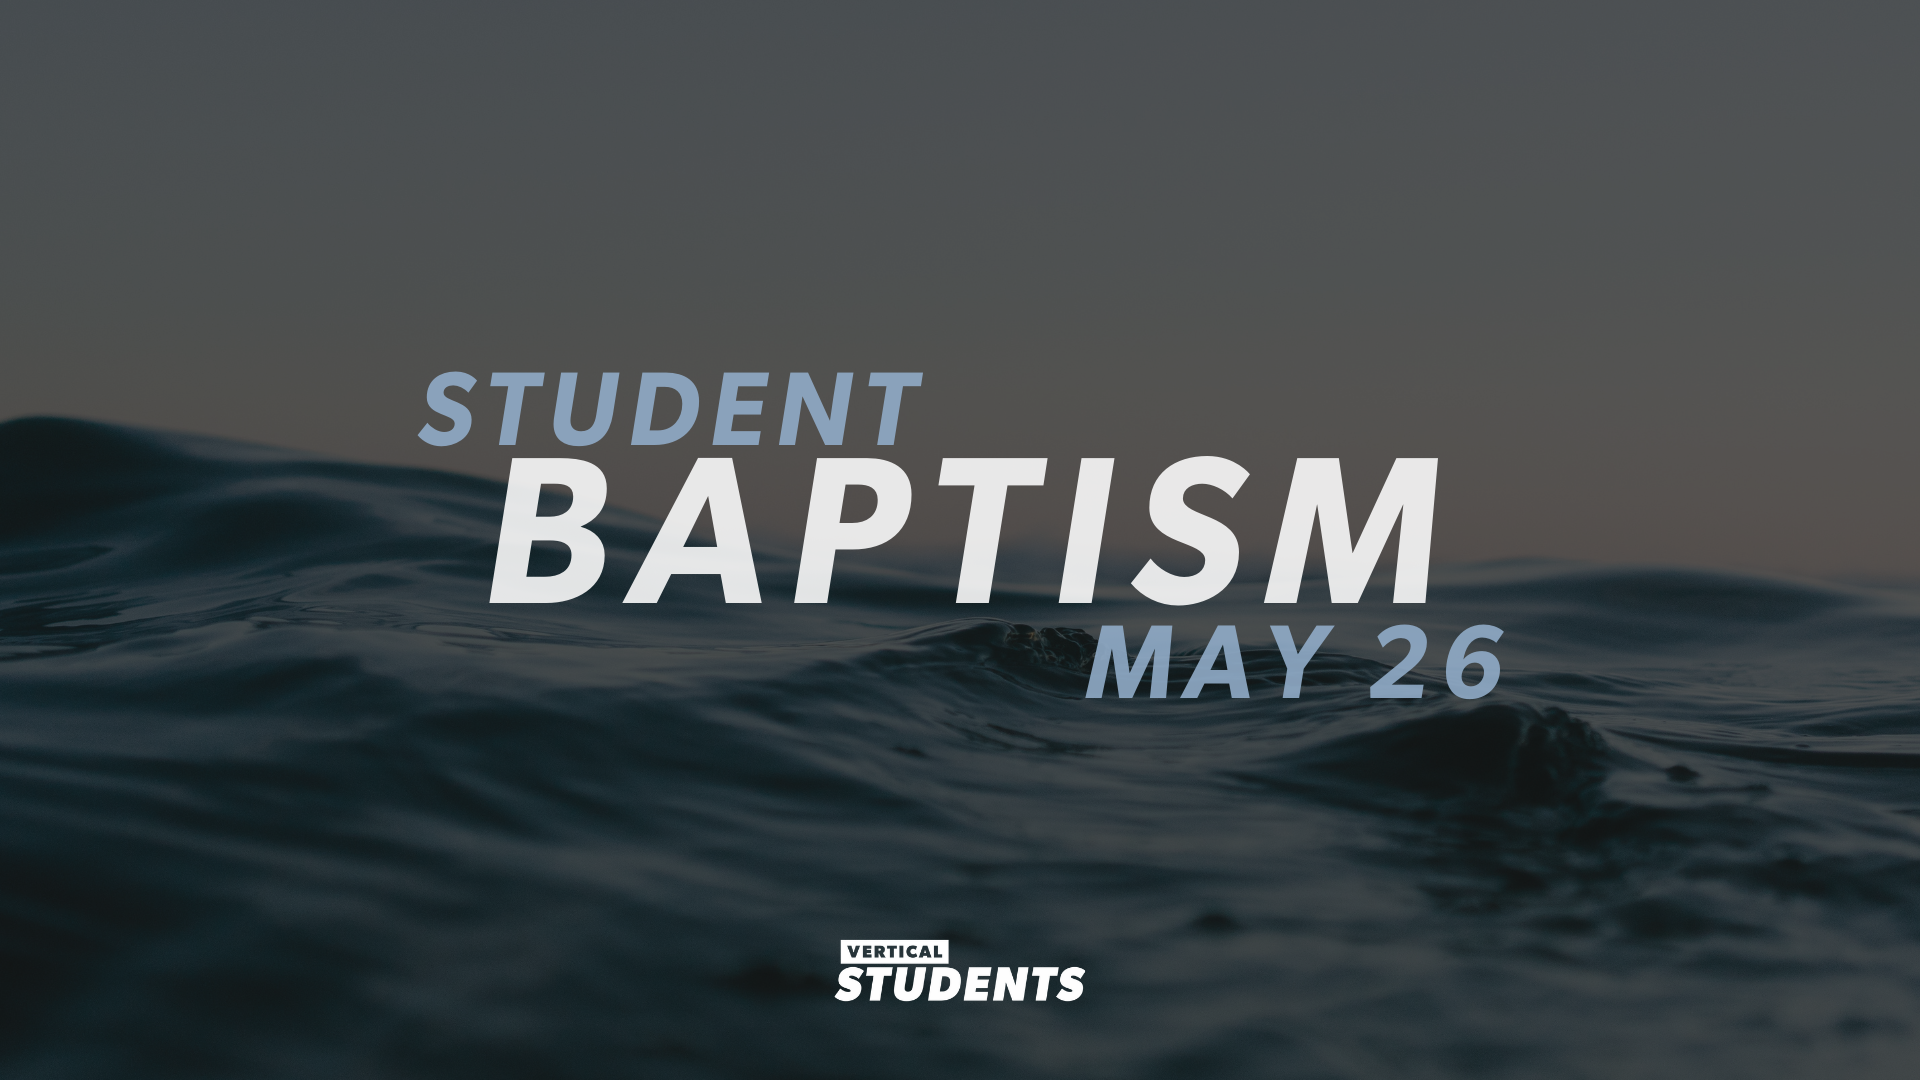 StudentBaptism2019.png